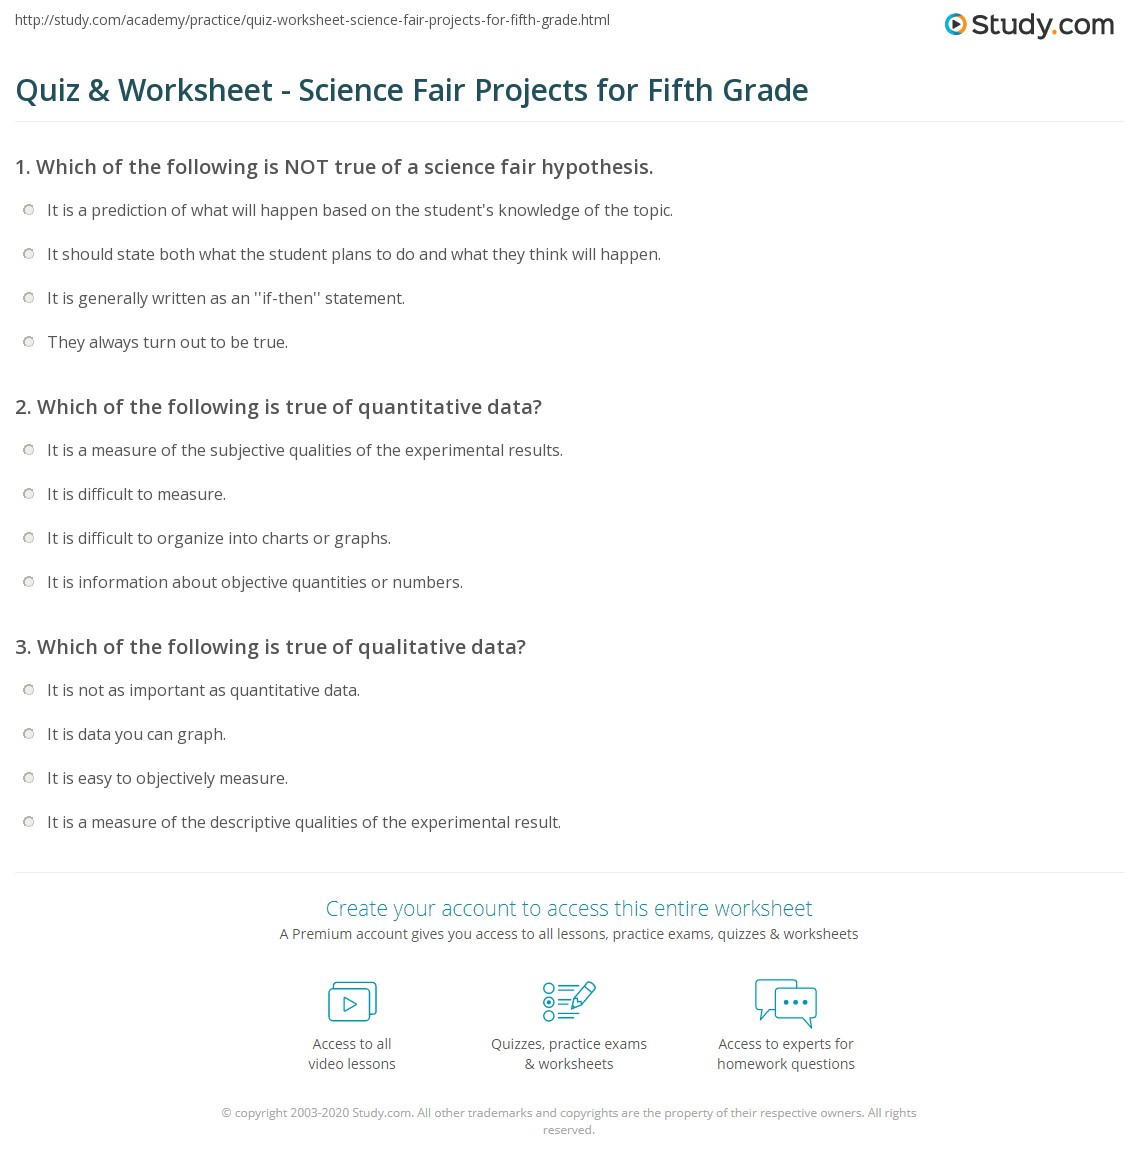 Scientific Method Worksheets 5th Grade Quiz & Worksheet Science Fair Projects for Fifth Grade